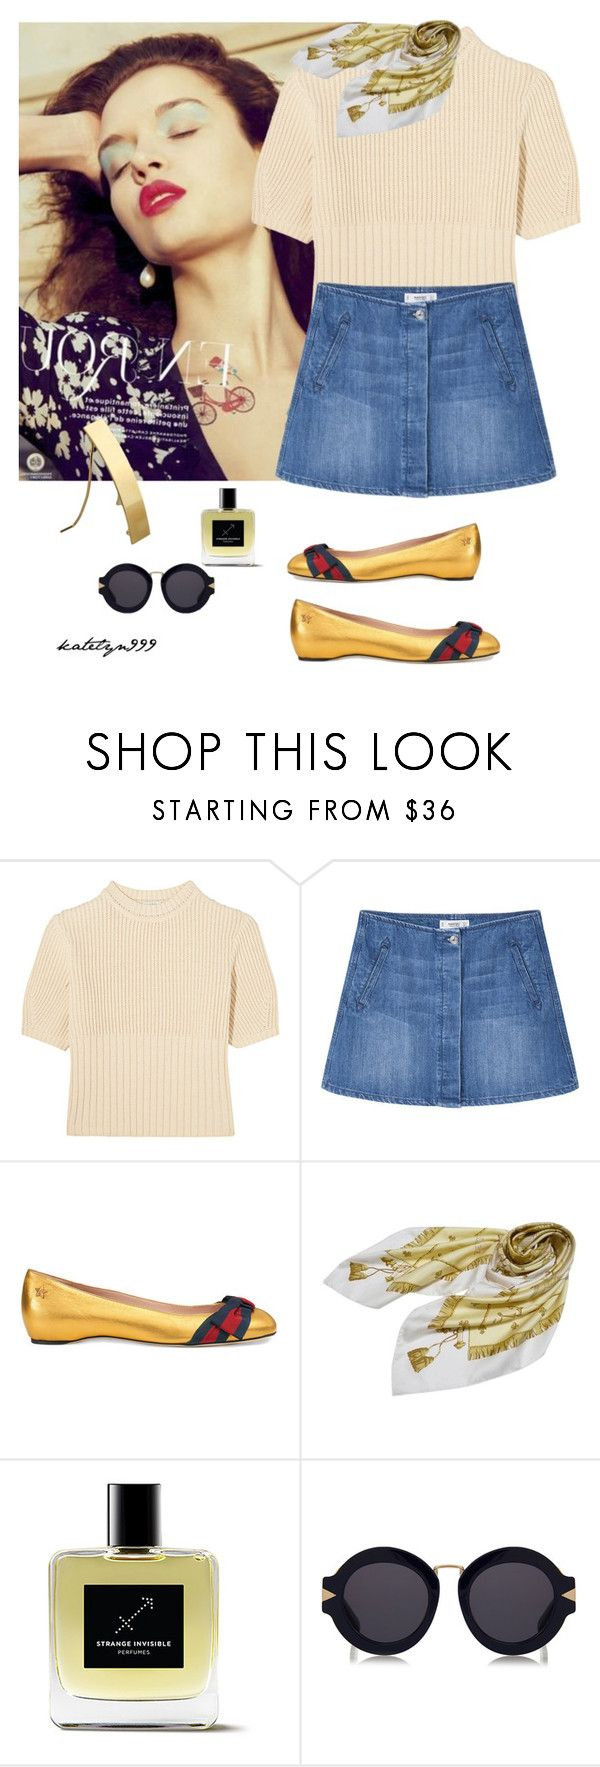 """""""Dream, smile ... laugh ..."""" by katelyn999 ❤ liked on Polyvore featuring Totême, MANGO, Gucci, Hermès, Karen Walker and Tiffany & Co."""